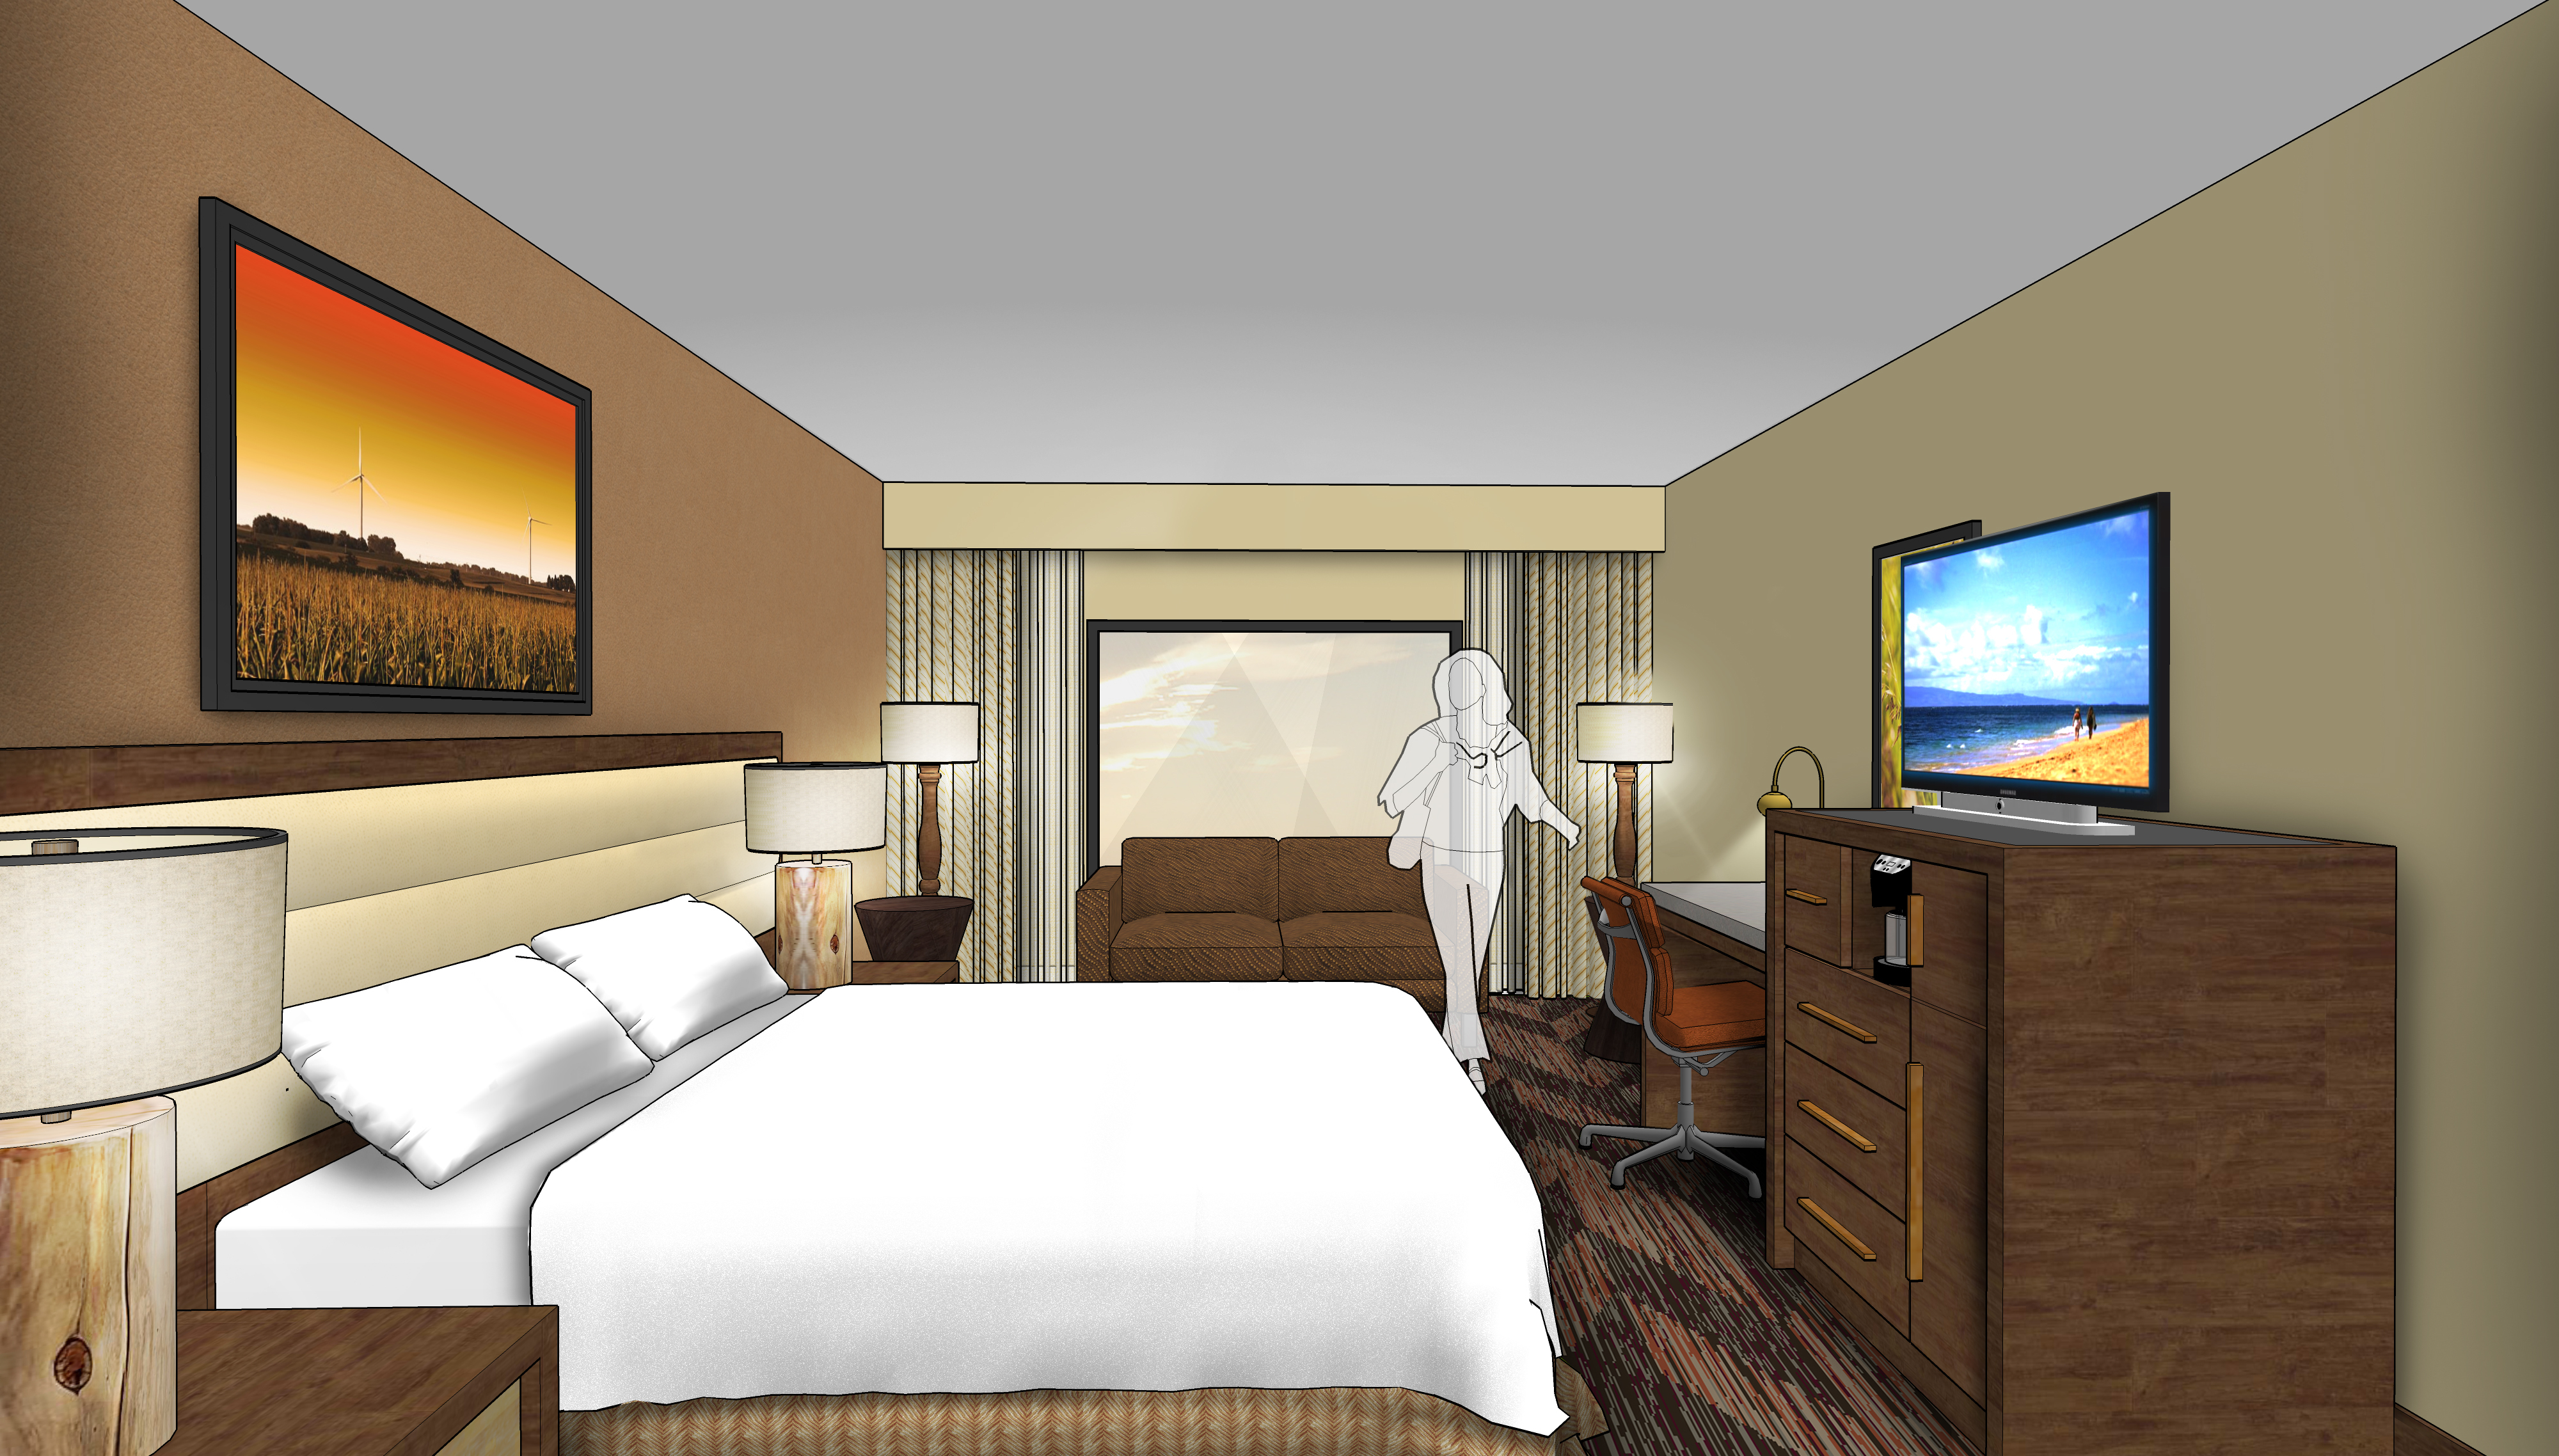 DoubleTree By Hilton Kicks Off First Property In Lawrence Opening Its Doors To Kansas Football Fans And University Visitors